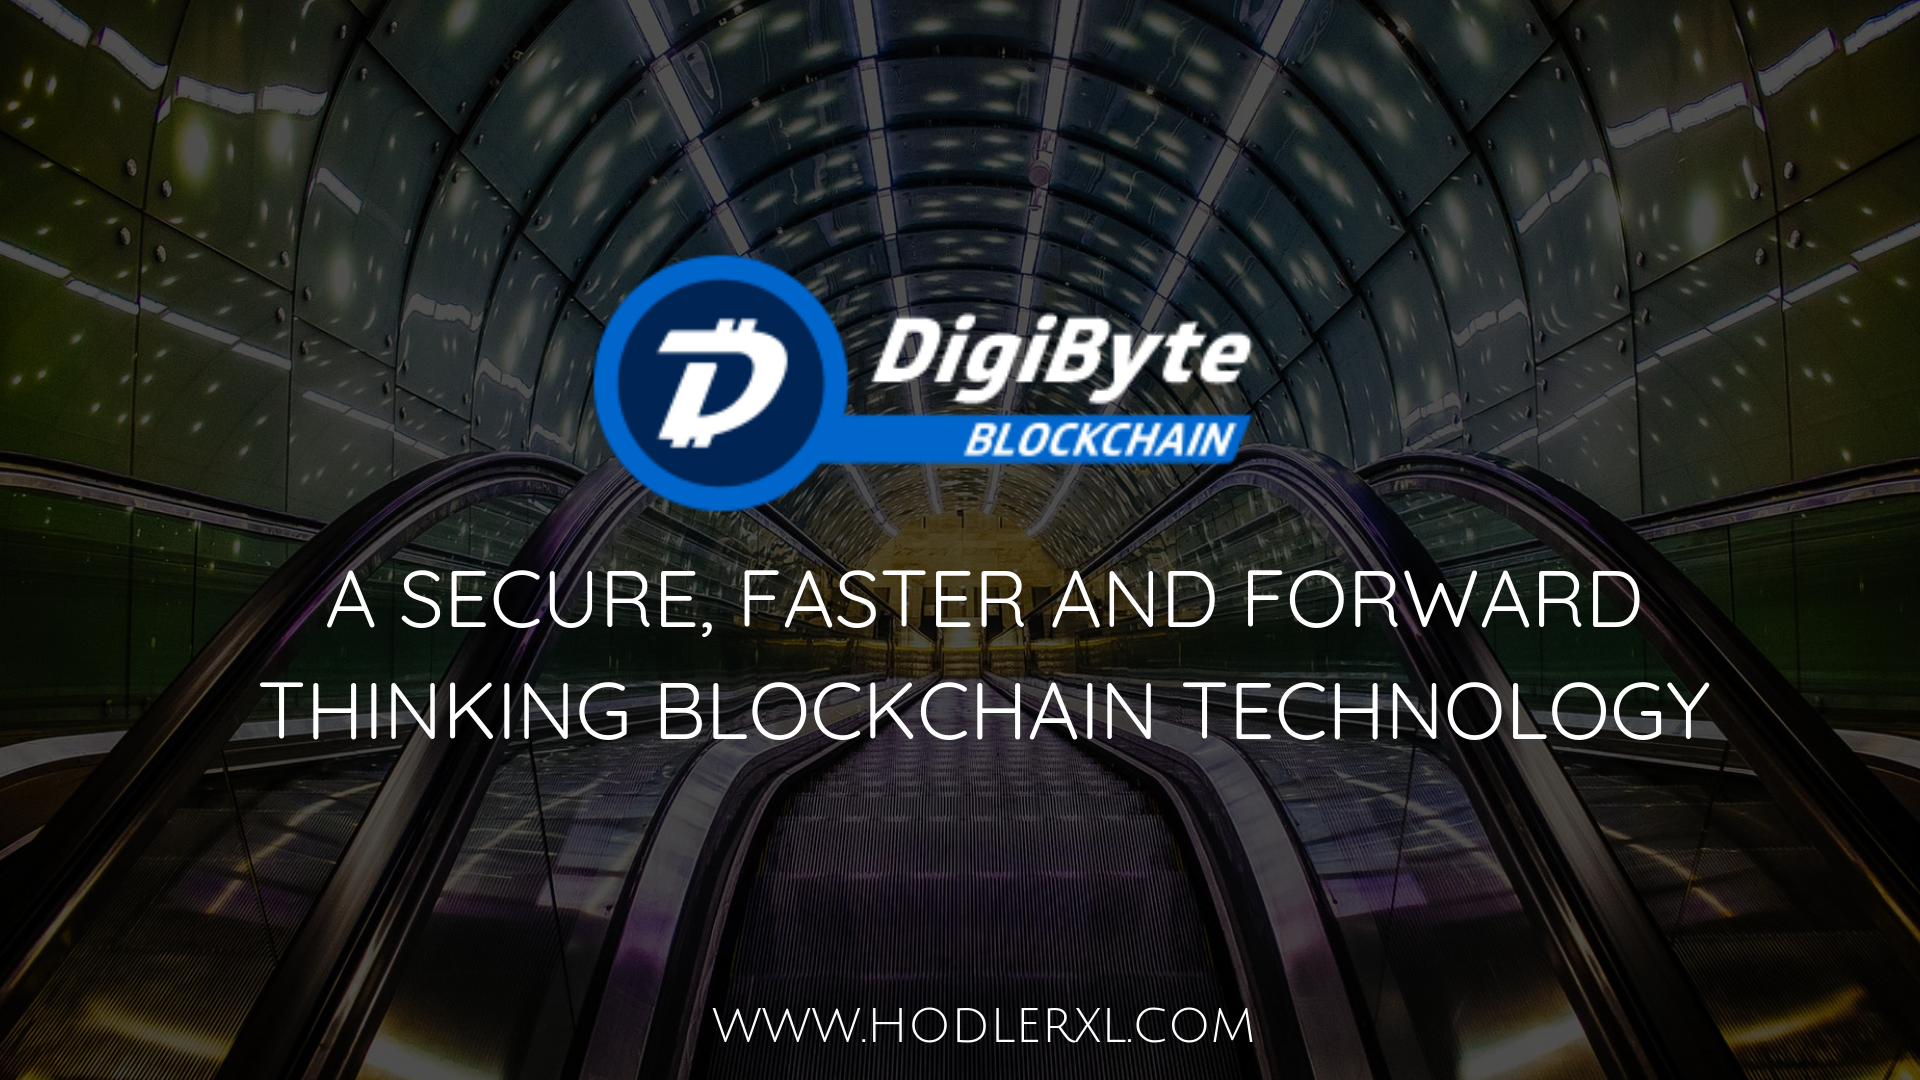 digibyte A Secure, Faster And Forward Thinking Blockchain Technology